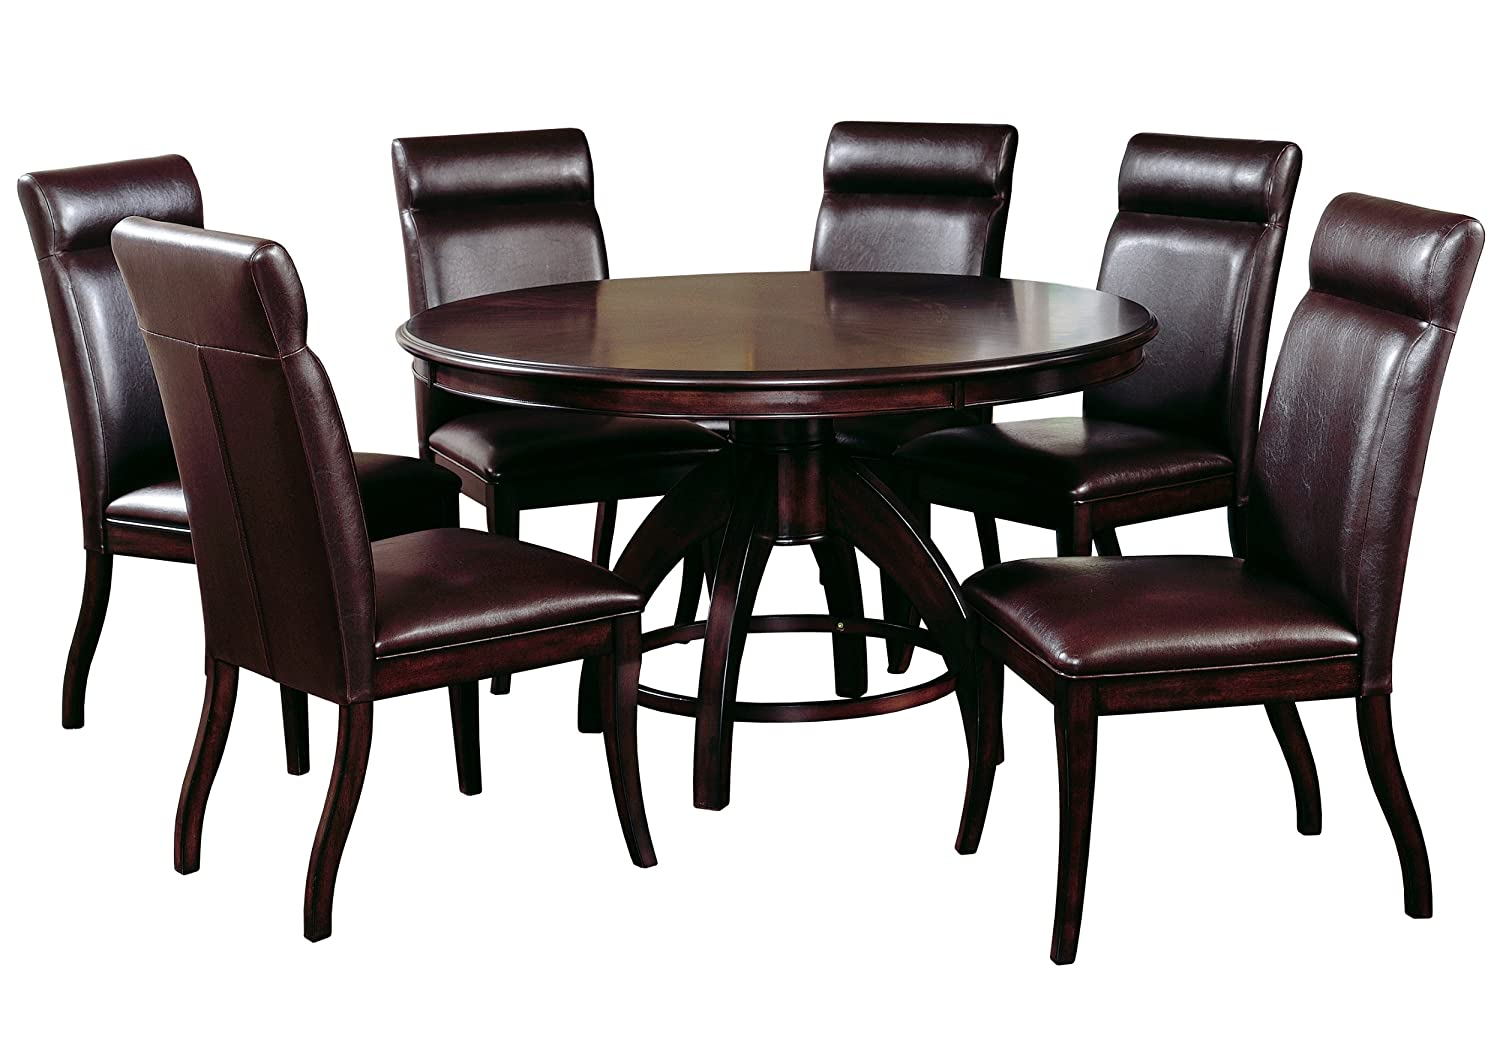 amazoncom hillsdale nottingham round 7piece dining set dark espresso set includes 1table and 6chairs table u0026 chair sets